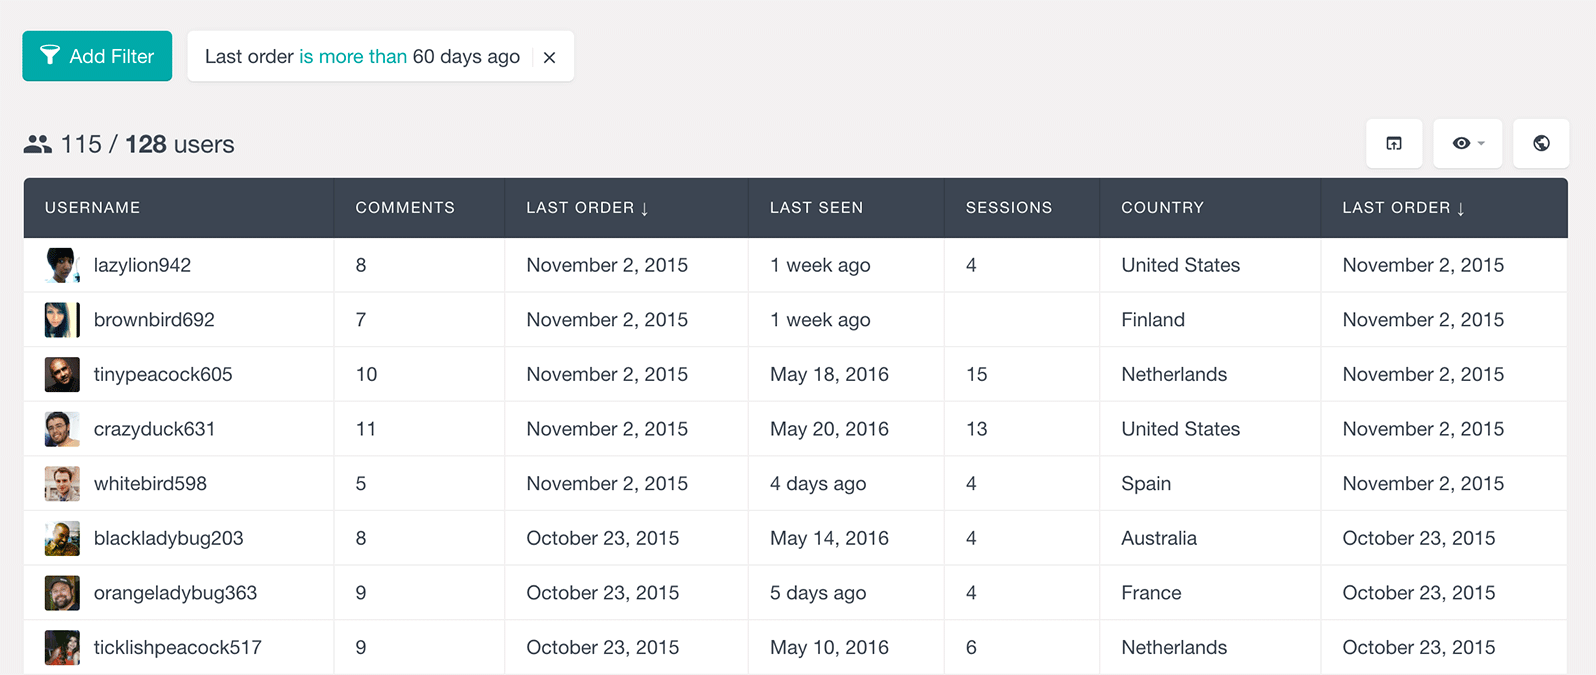 inactive users who don't visit as much